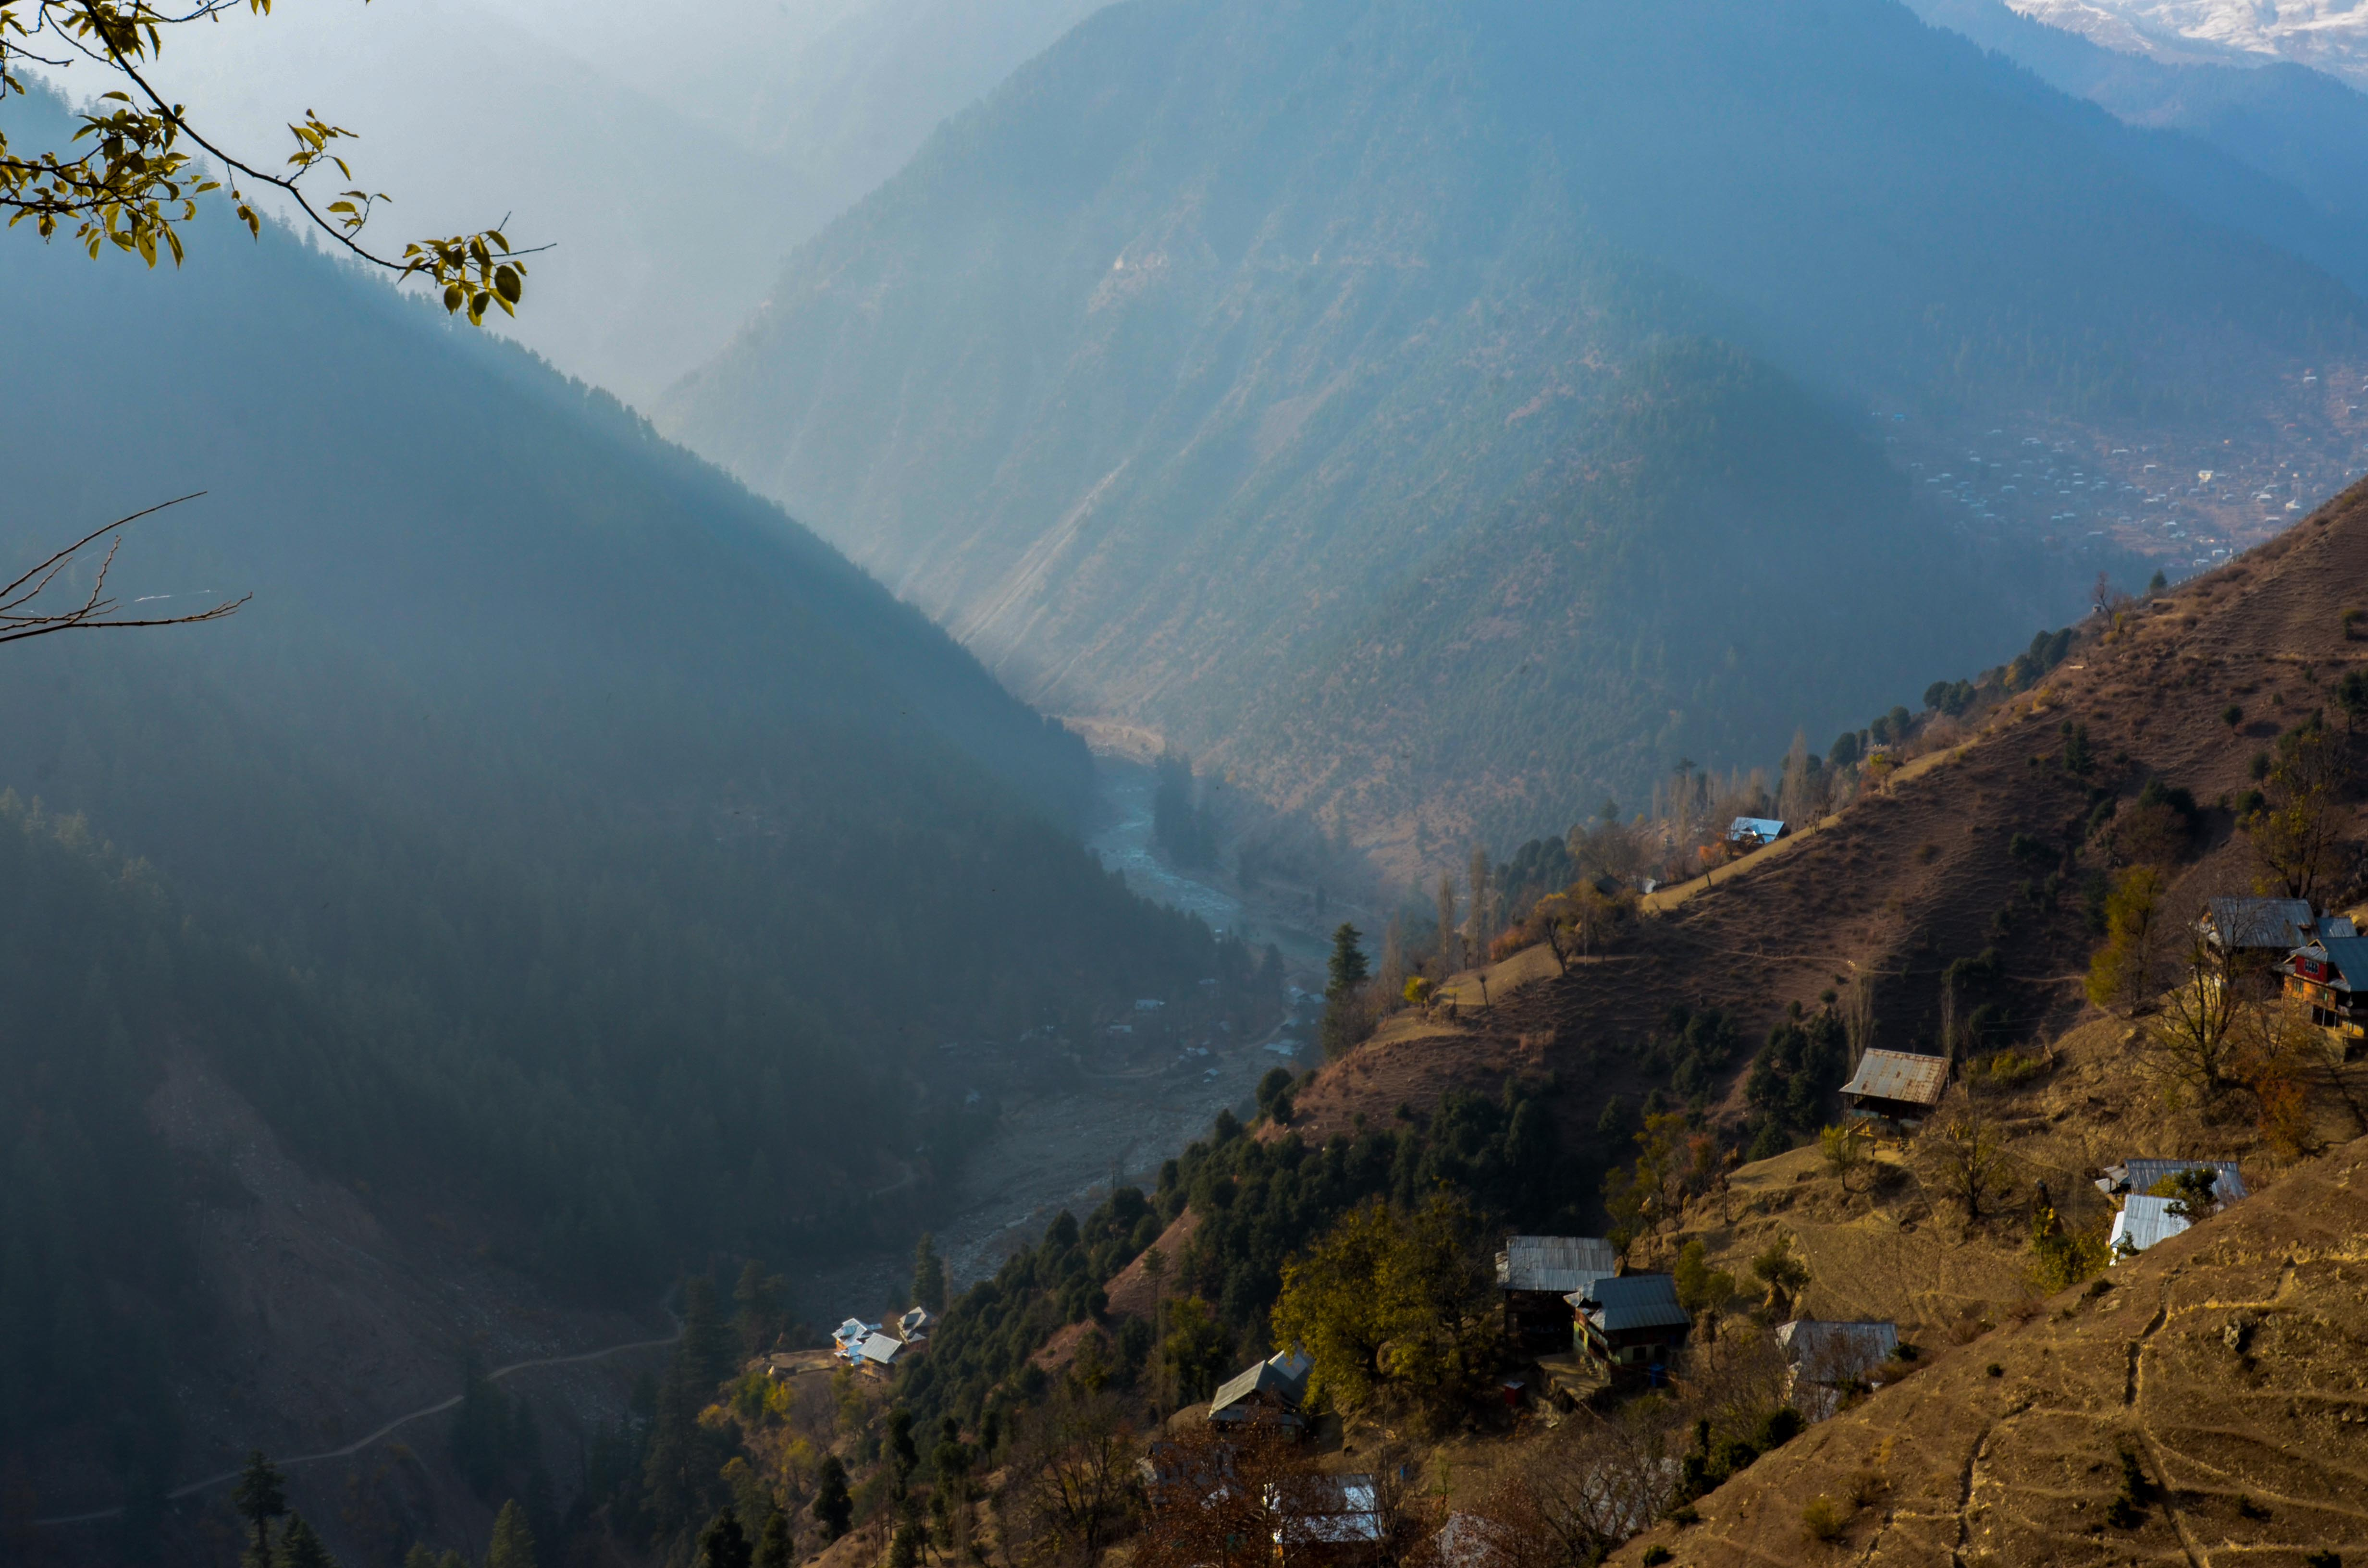 Villages in Keran sector are a stone's throw from the Line of Control and the Neelum river.